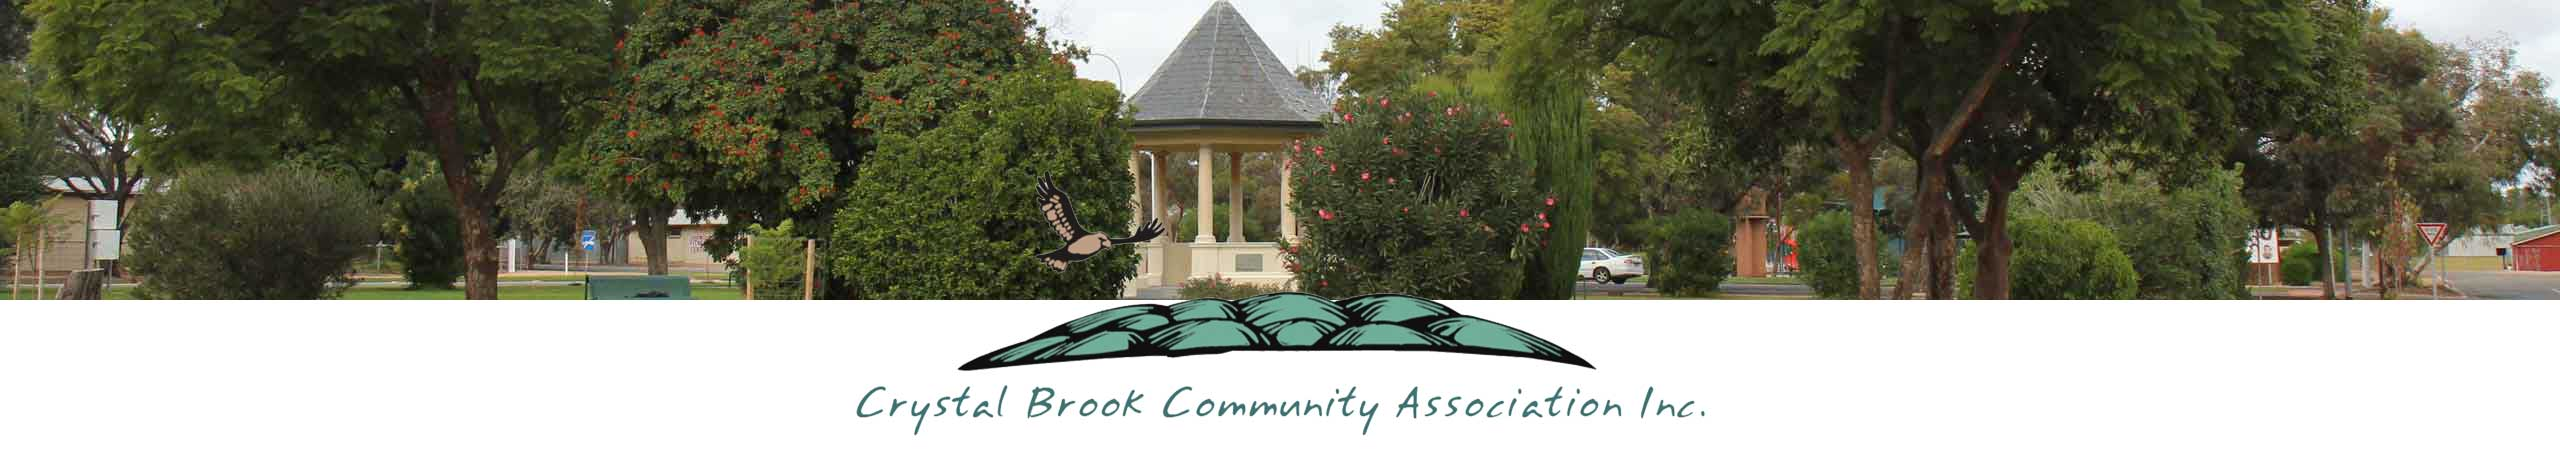 Crystal Brook Community Association